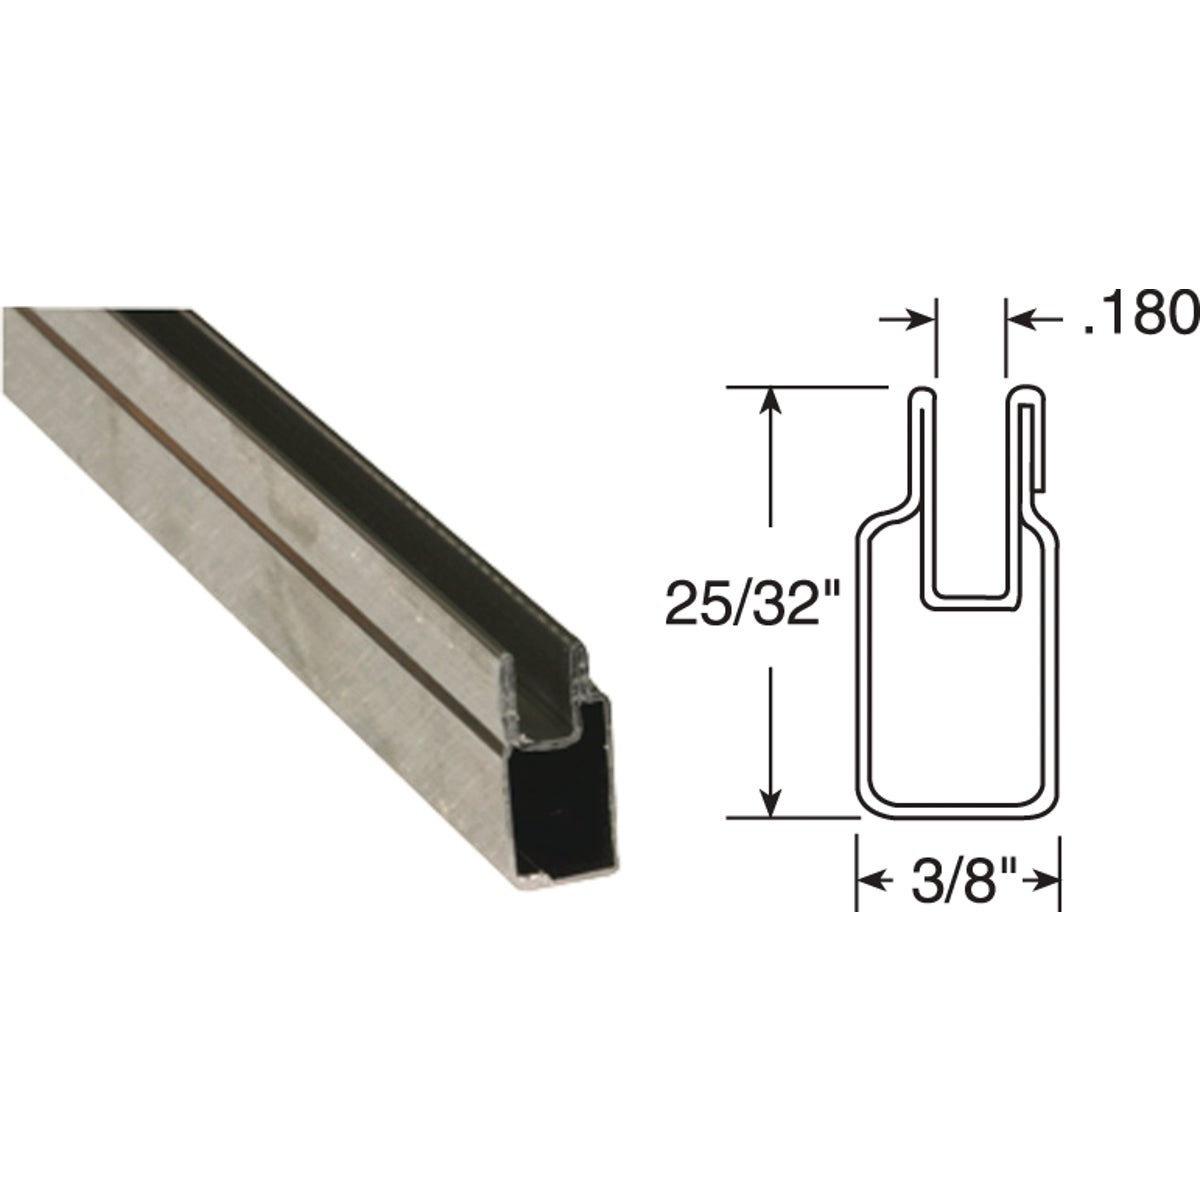 3/8X25/32X94 ML WN FRAME - PL14155 by Prime Line Products